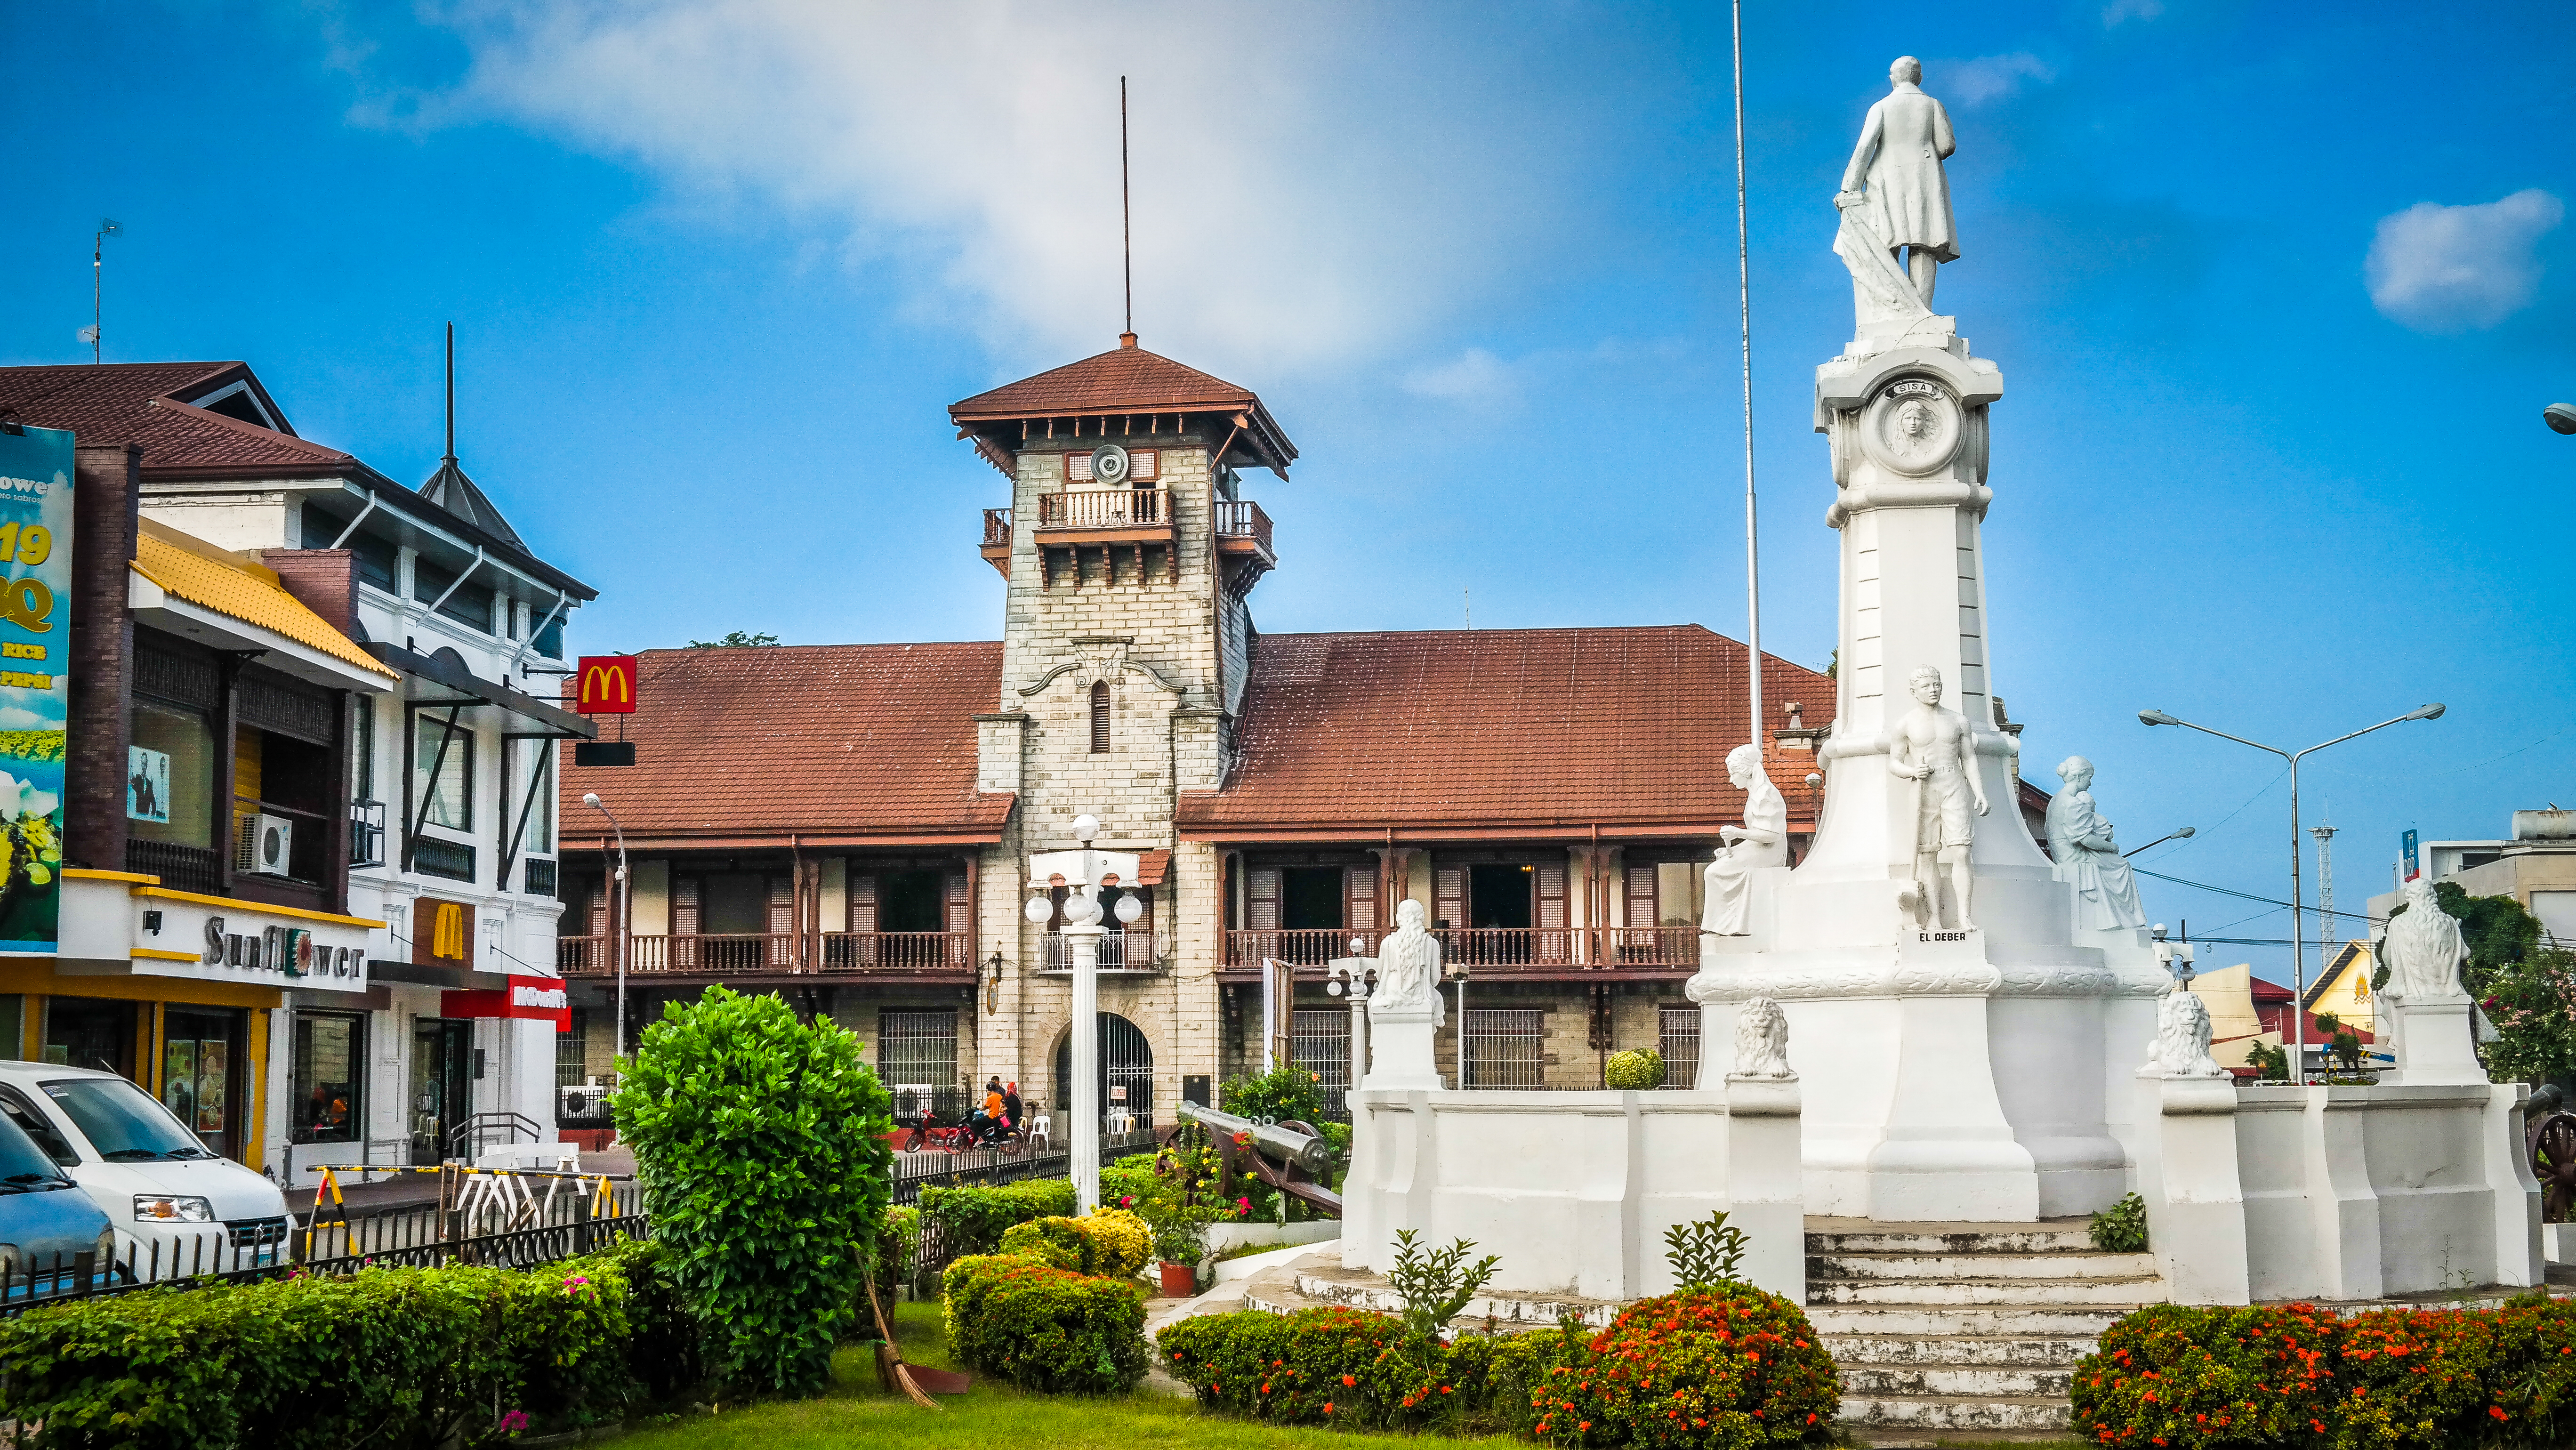 zamboanga city Travel the world better book your zamboanga city hall car rental now & pay at pick up expedia partners with 55+ suppliers for the lowest prices save more with the expedia price guarantee.